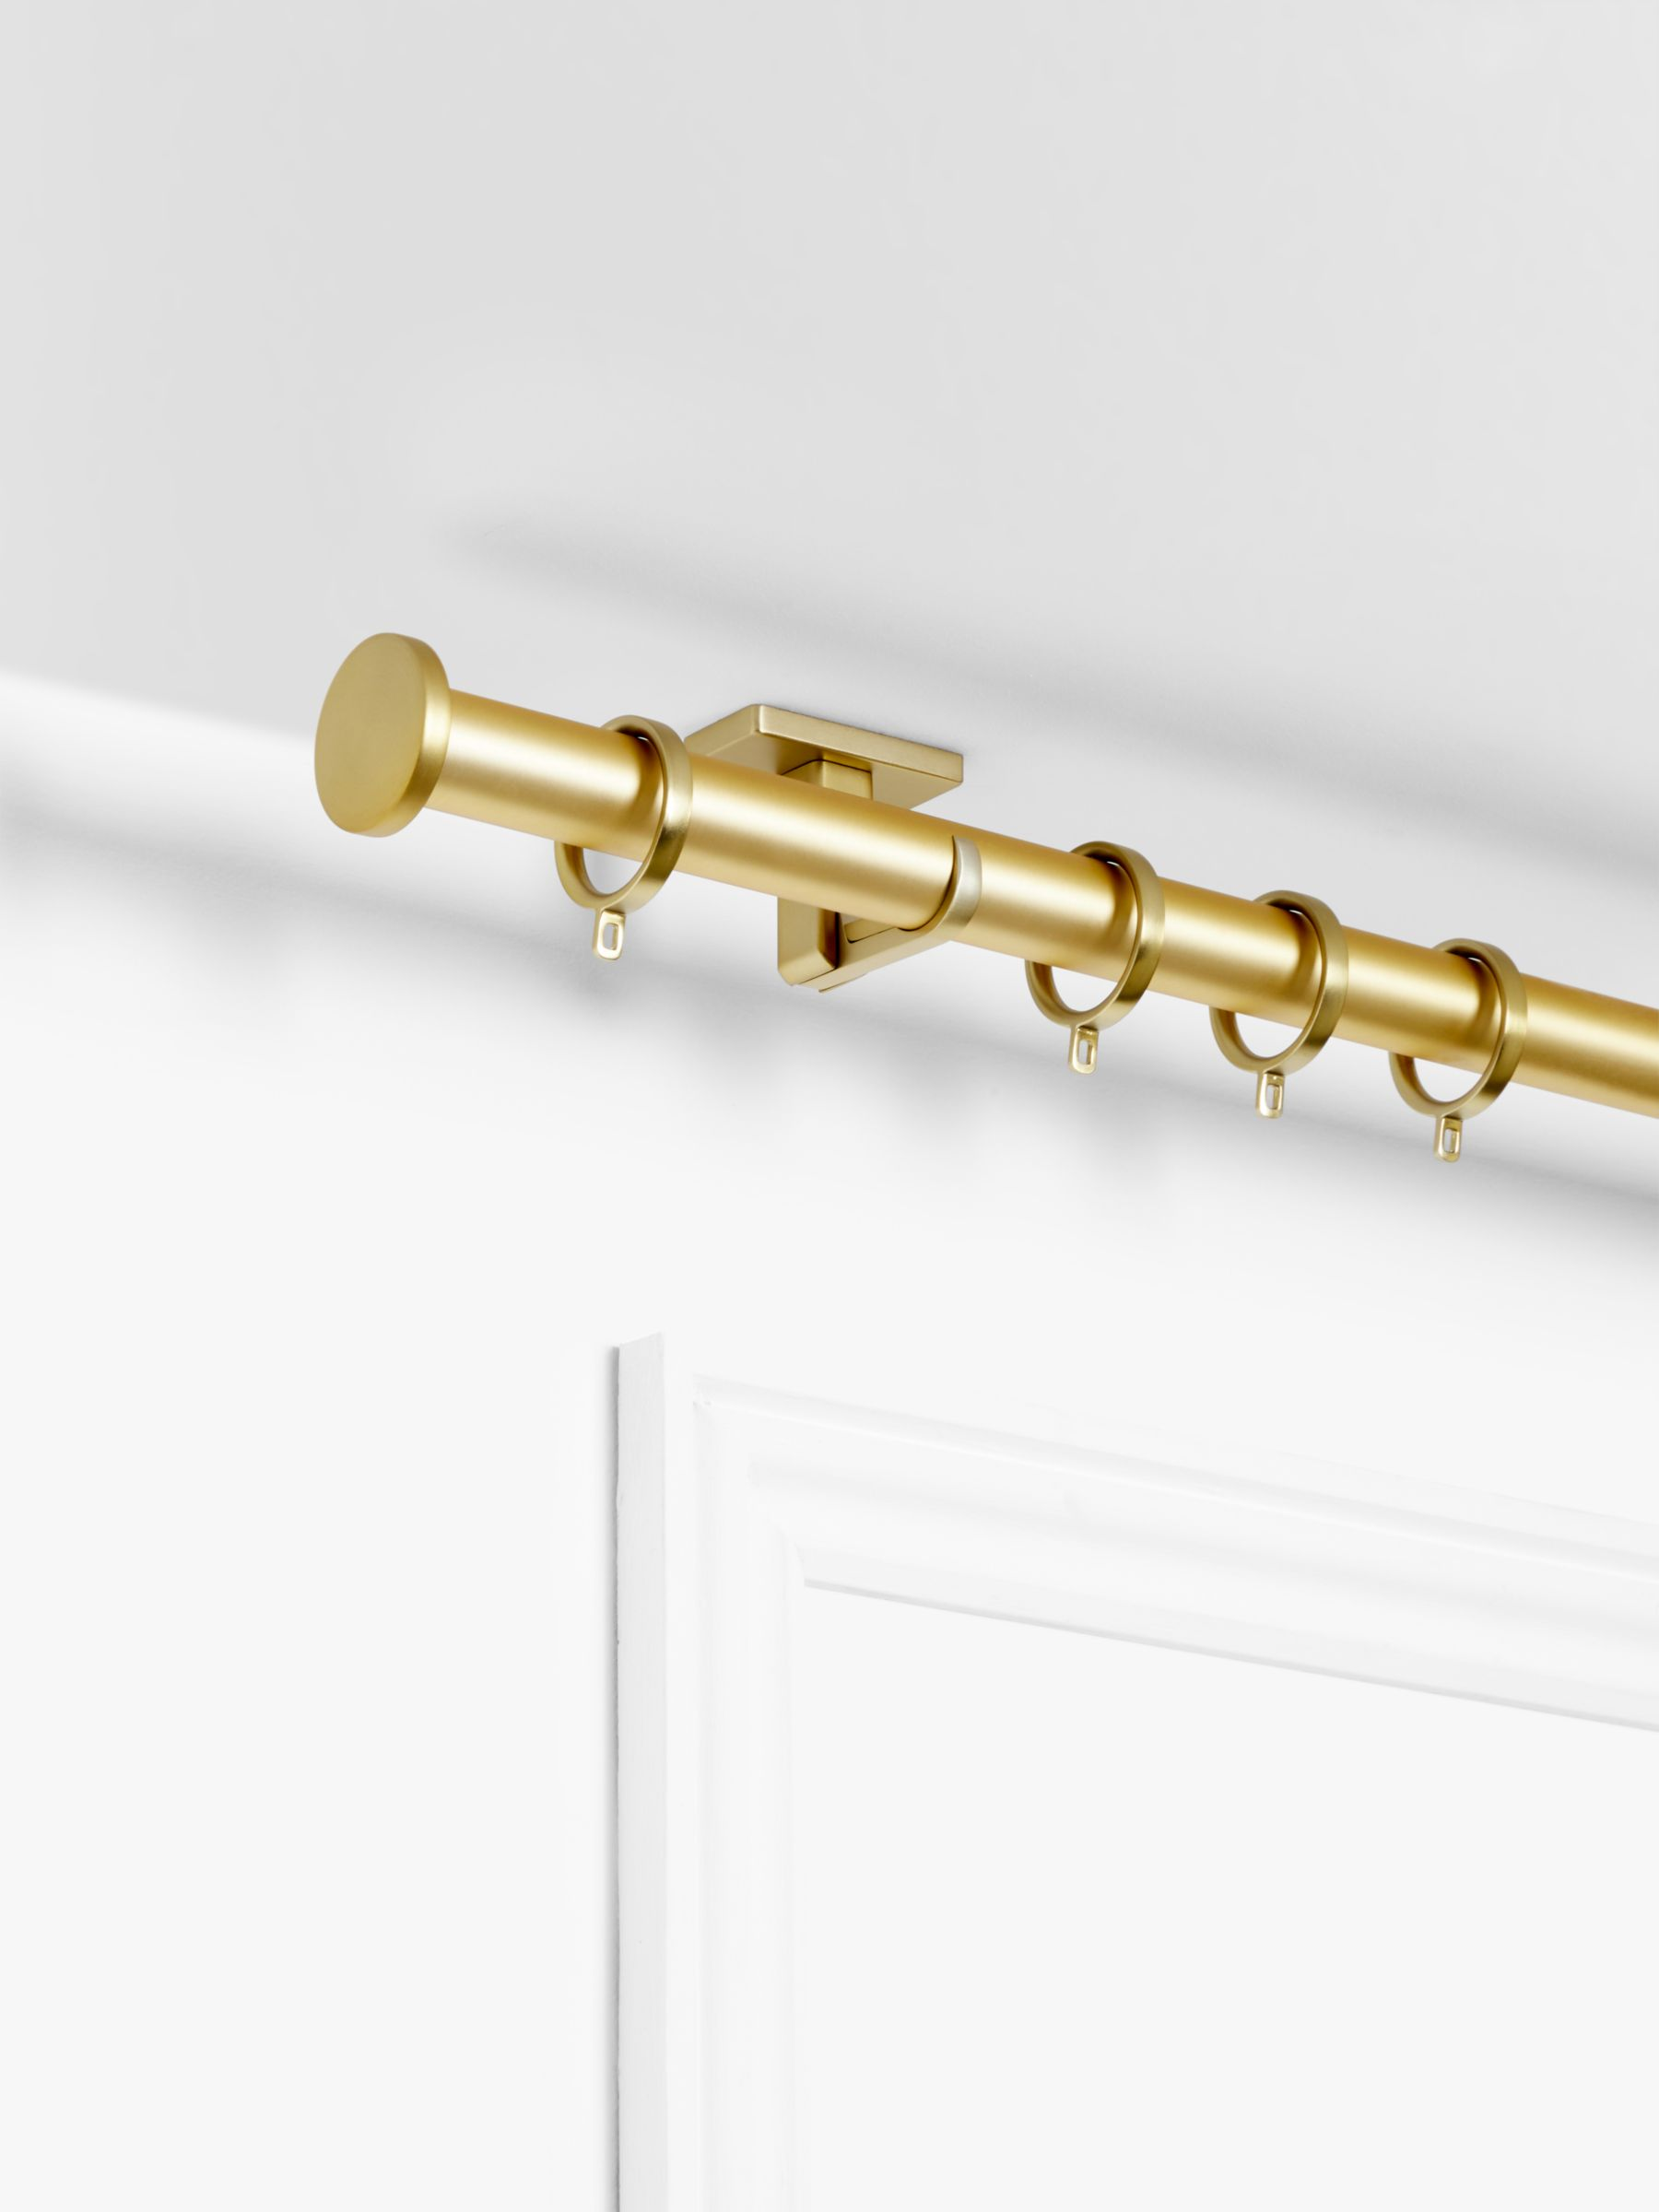 John Lewis Partners Made To Measure Revolution Bay Bend Curtain Pole With Rings And Disc Finials Wall Ceiling Fix Dia 30mm At John Lewis Partners